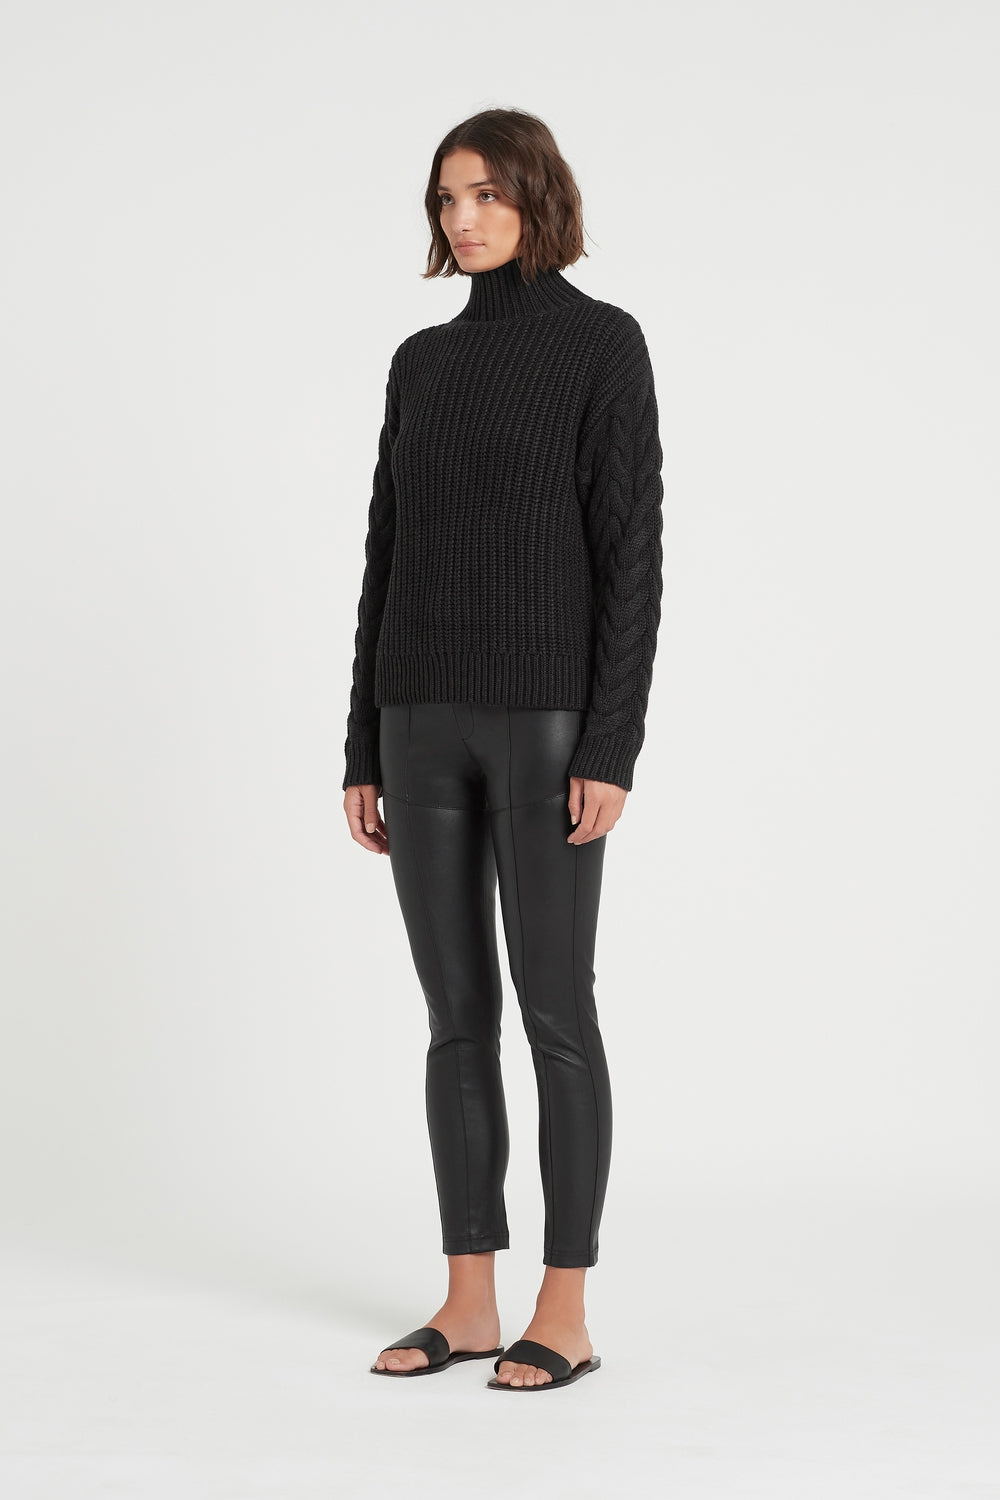 SIR the label AVA HIGH NECK SWEATER BLACK